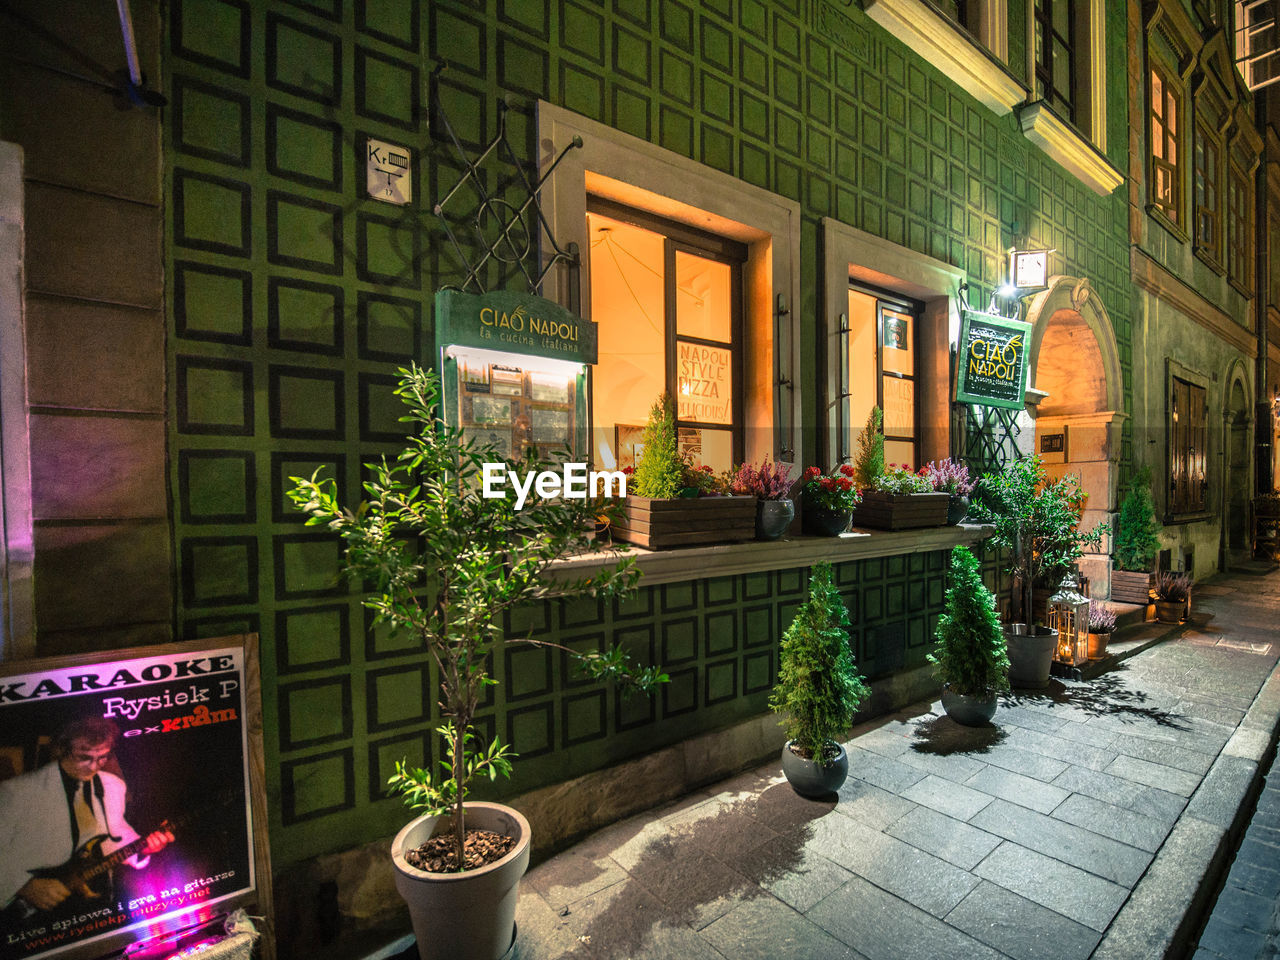 architecture, built structure, plant, building exterior, potted plant, building, flower, window, flowering plant, illuminated, city, nature, no people, outdoors, entrance, night, text, street, growth, flower pot